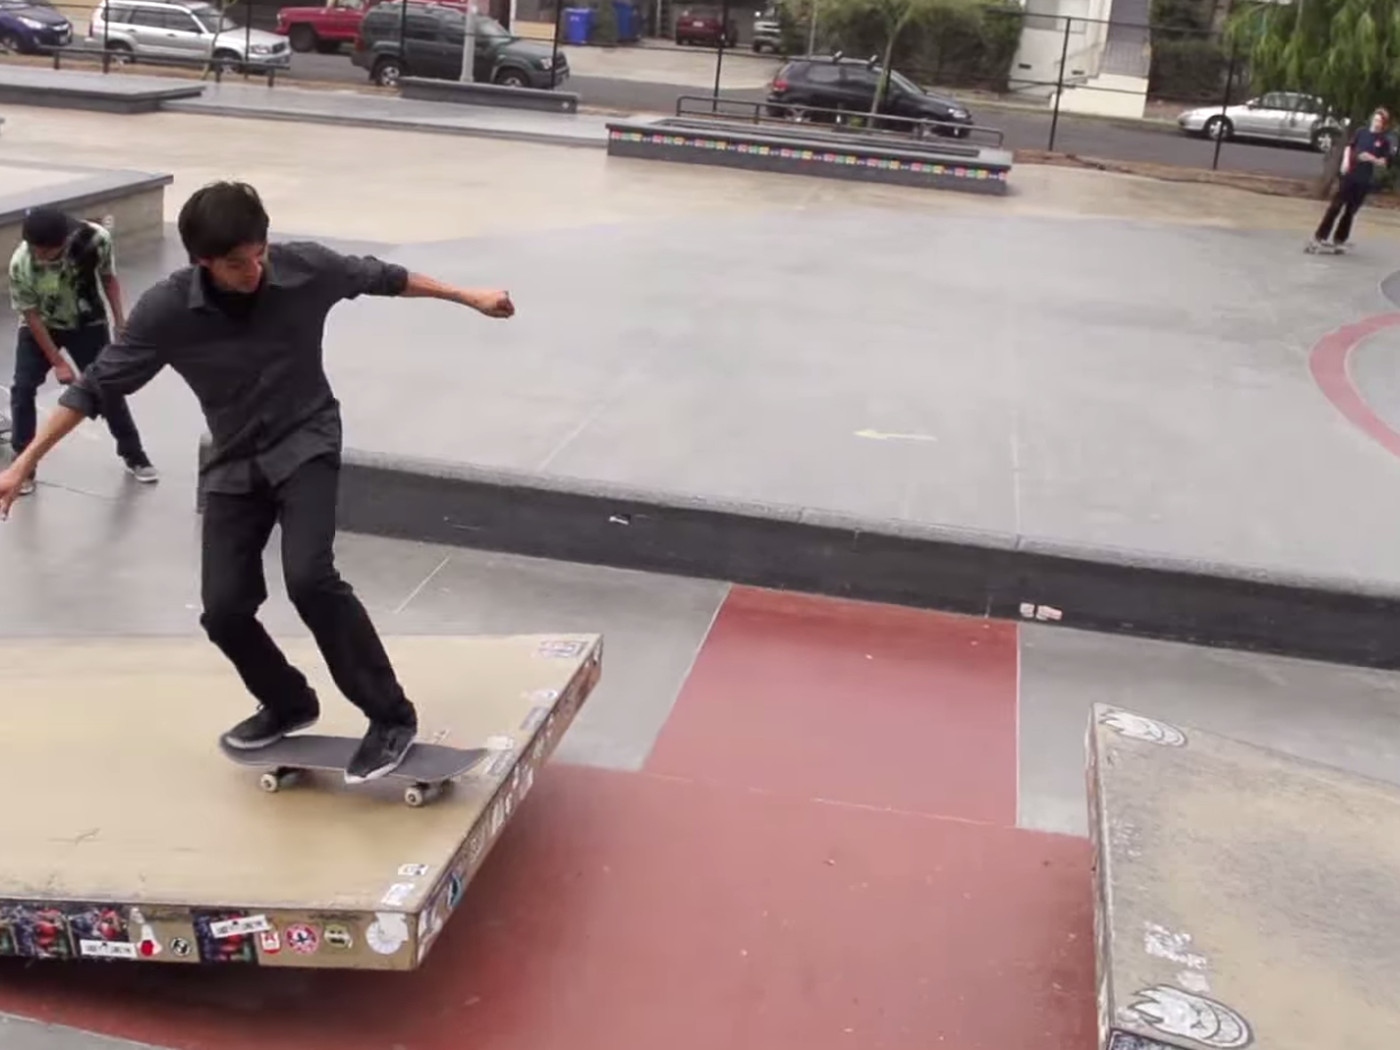 Slow-motion videos of skateboarding are all I want to film